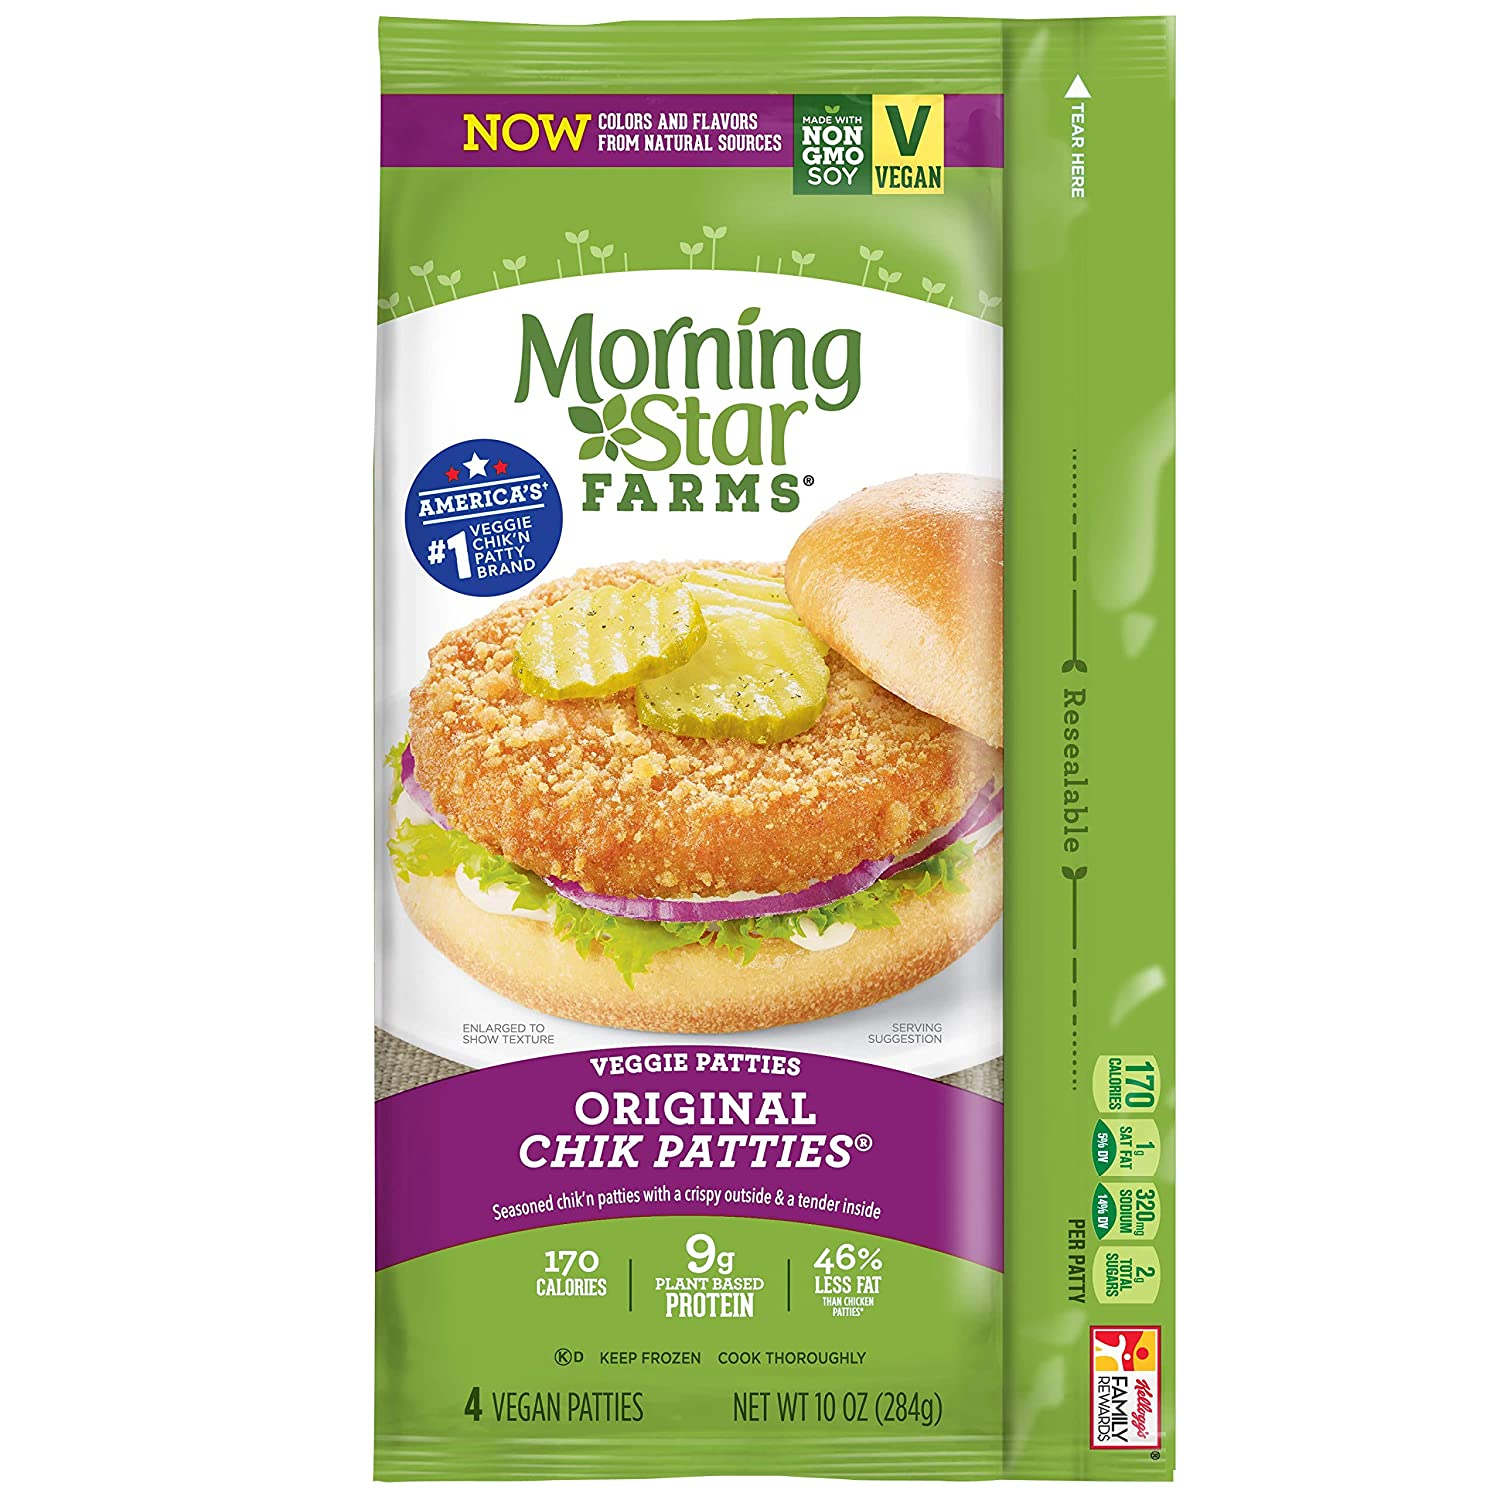 Morningstar Farms, Veggie Burgers, Original Chik Patties, Vegetarian, 10 oz (4 Count)